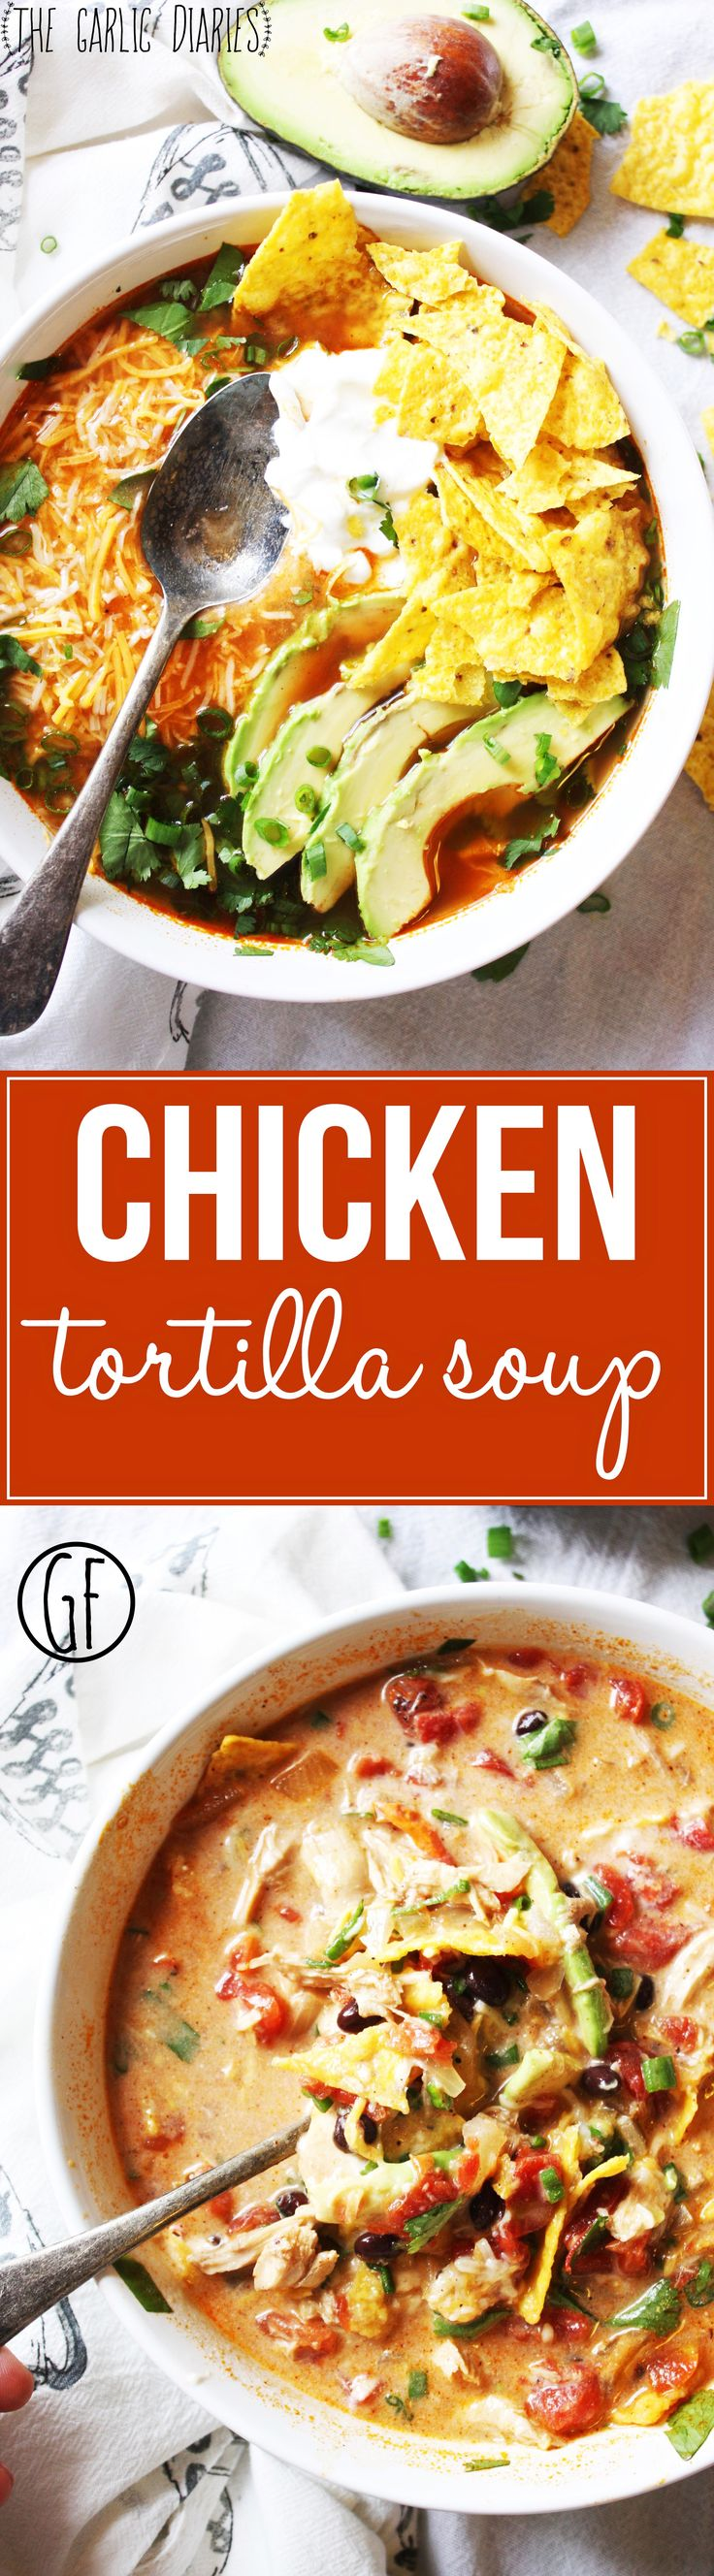 Chicken Tortilla Soup This soup is so easy and SO yummy It s all about